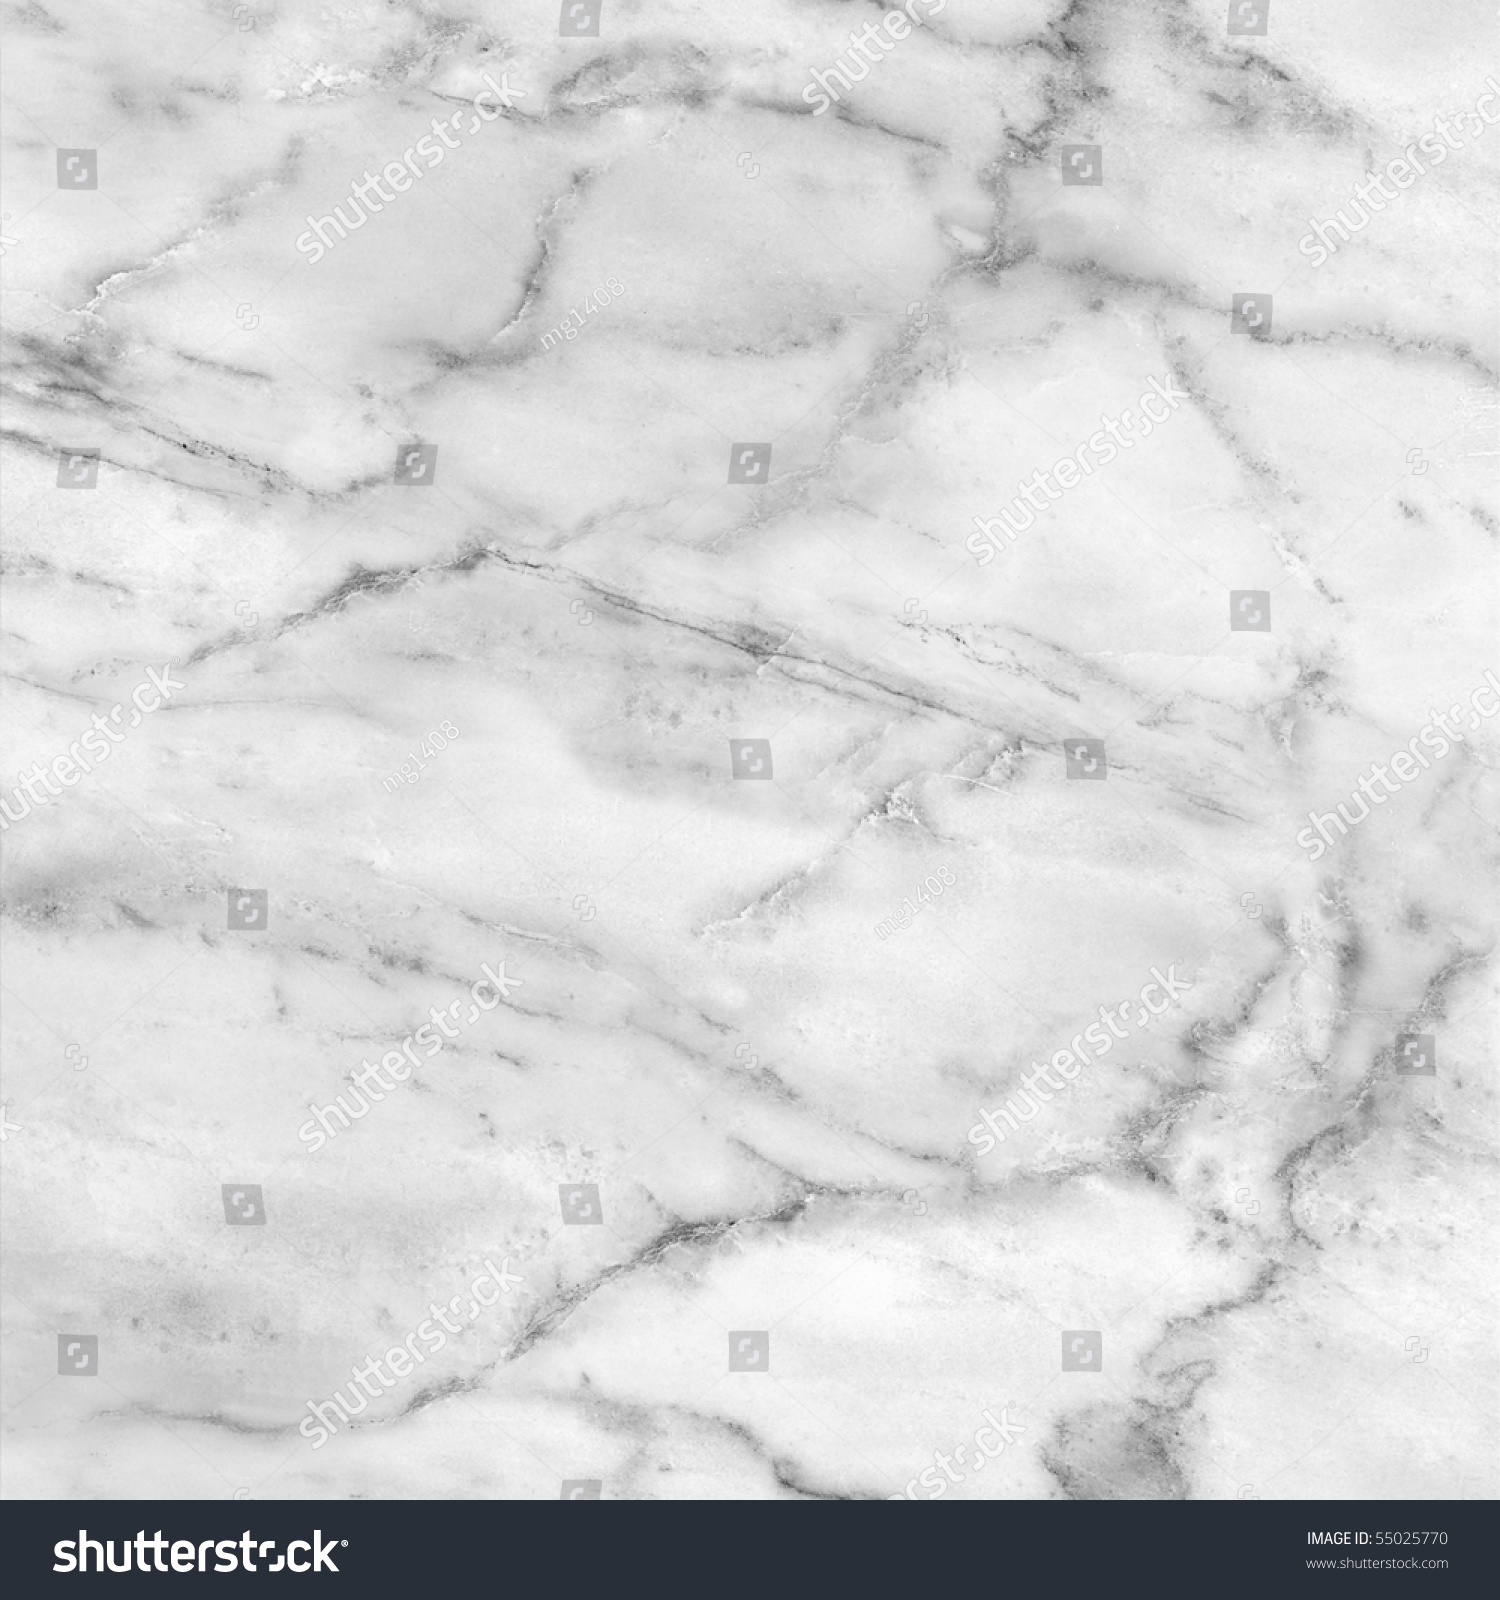 White Marble Texture Background High Resolution Stock Photo ...